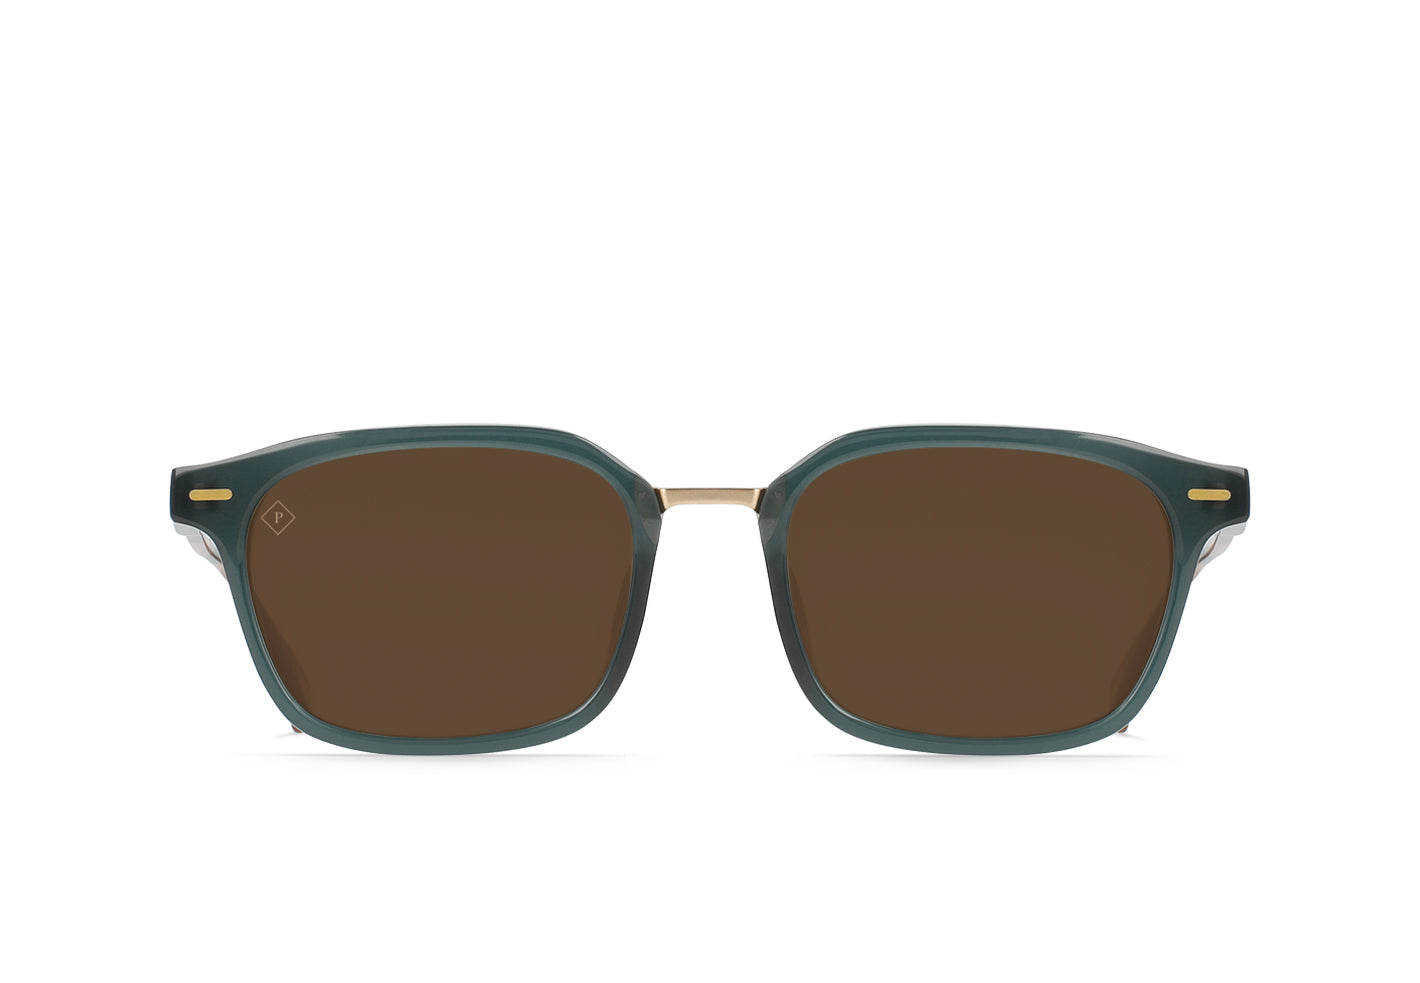 Cirus + Brushed Sunshine Gold / Vibrant Brown Polarized